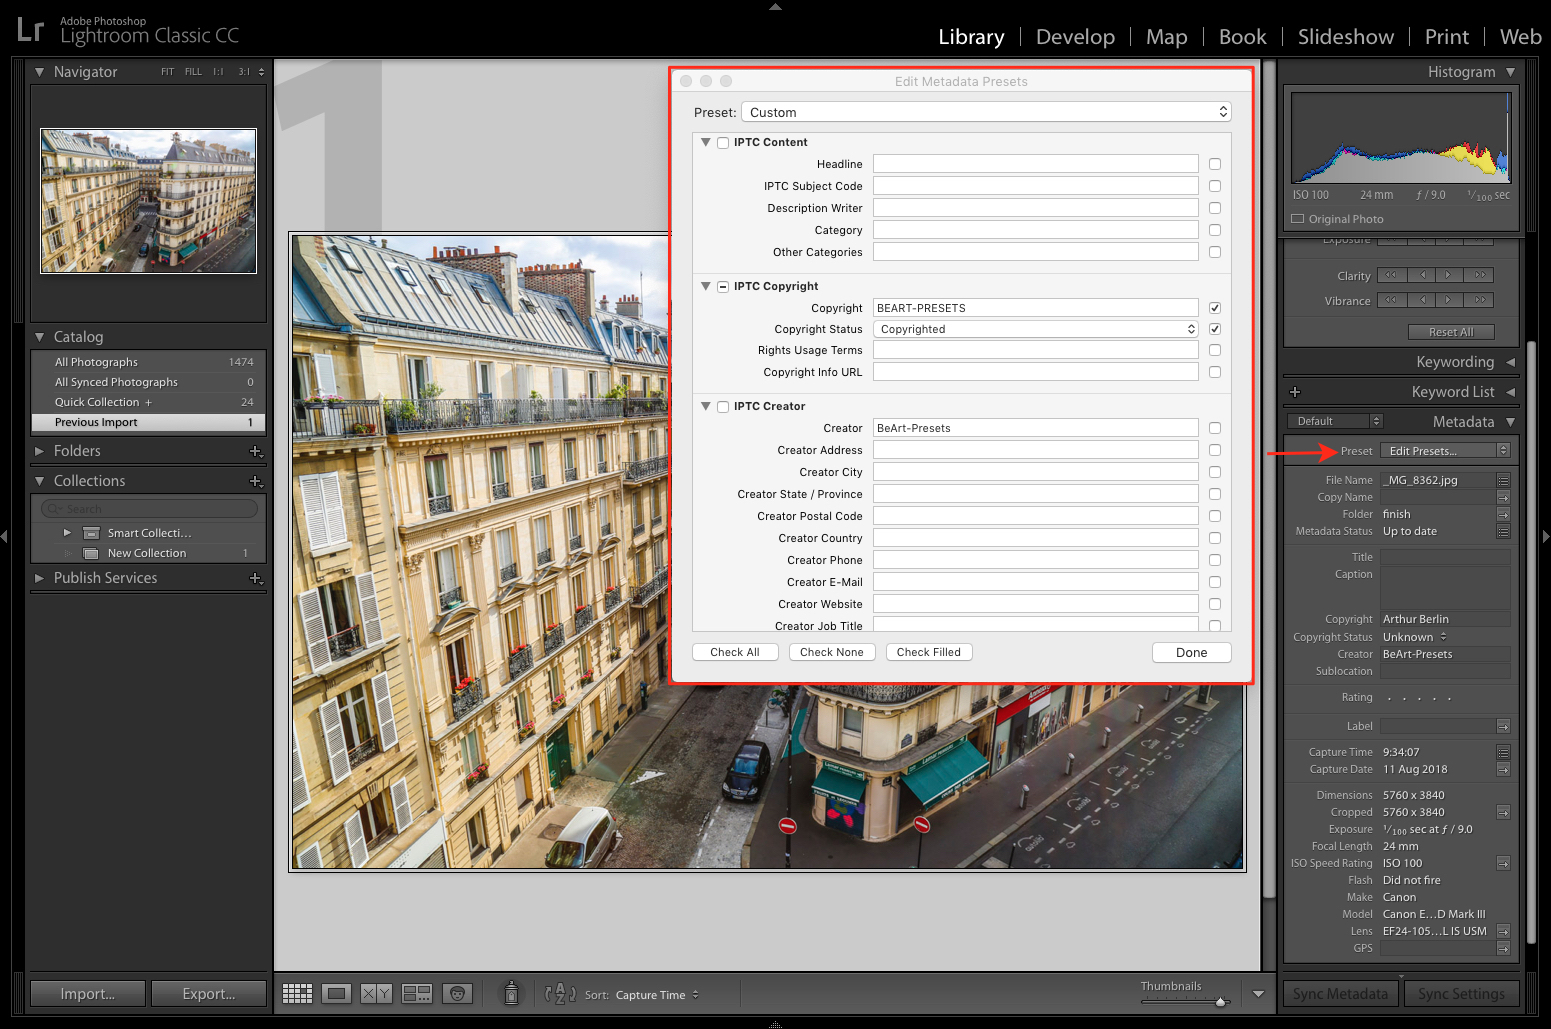 Edit metadata preset in lightroom